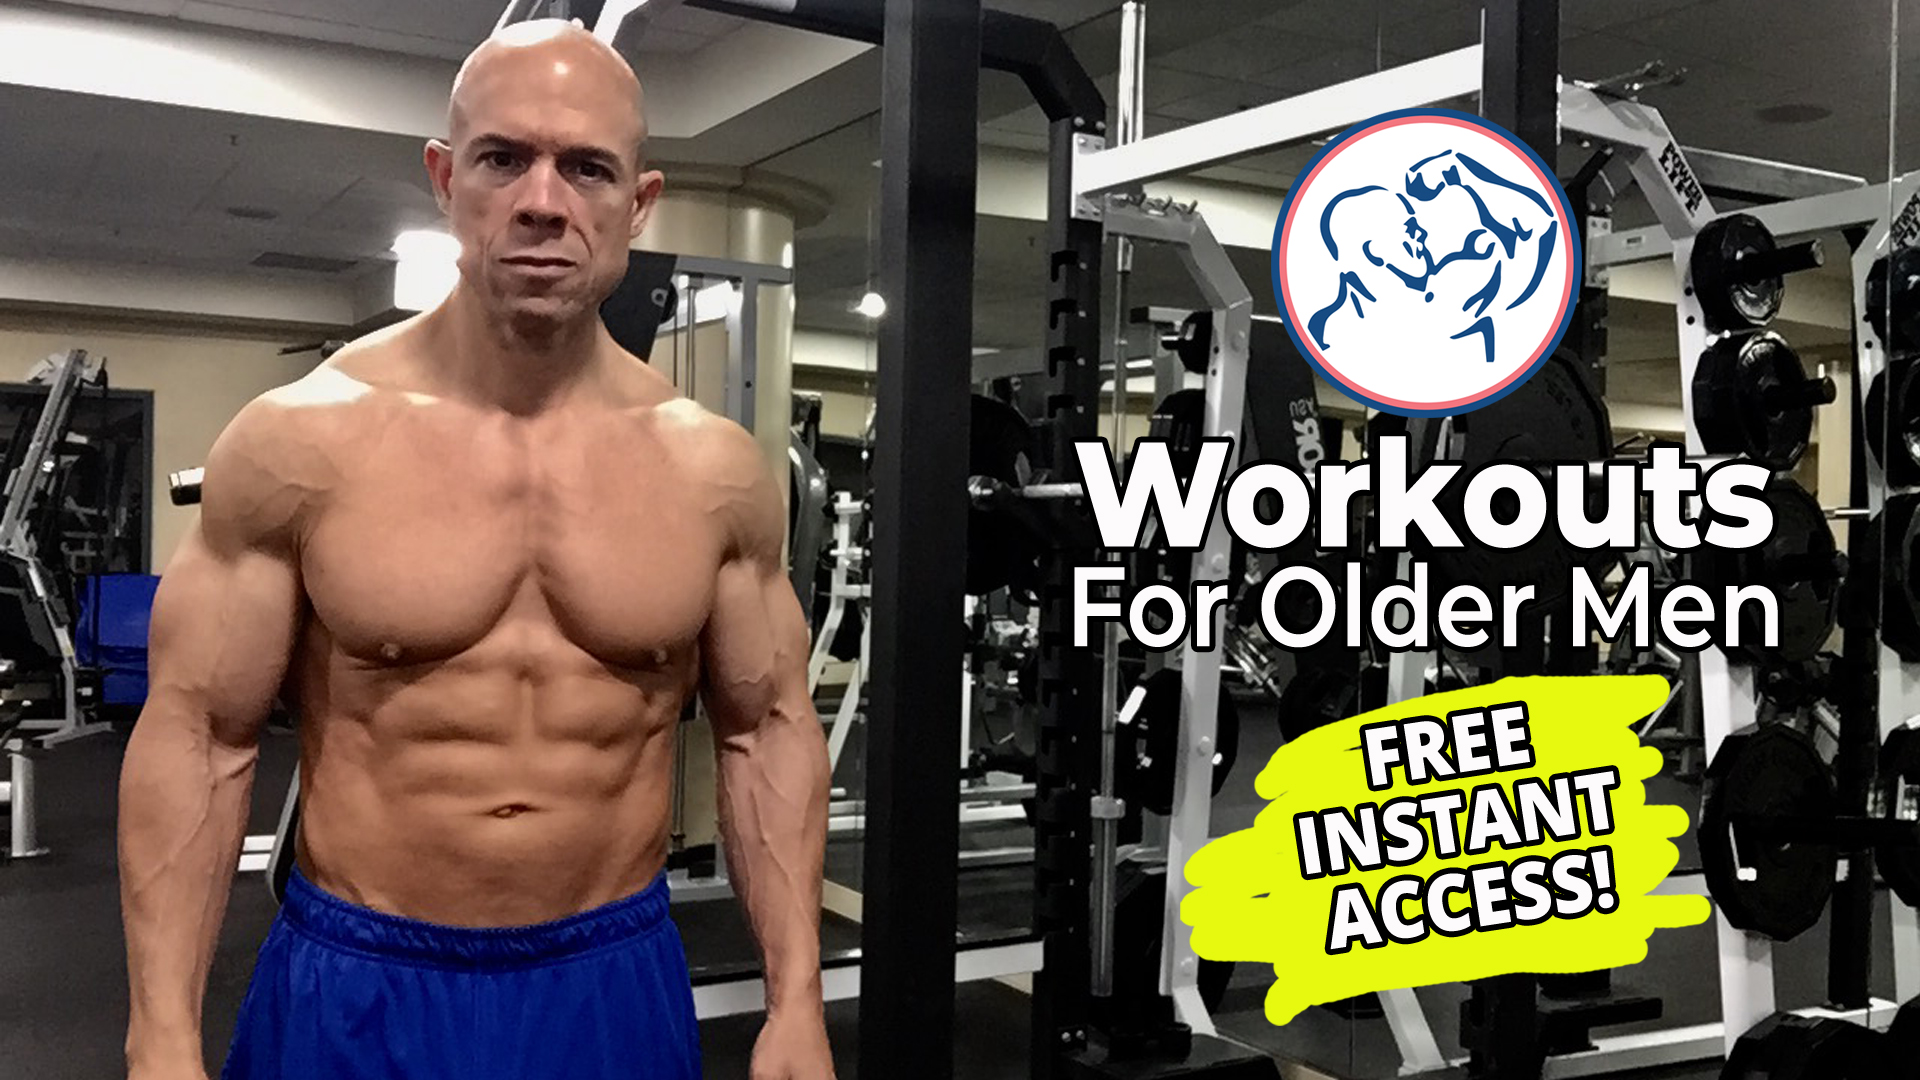 splash 2 How To Build Bigger Arms   Workouts For Older Men   Biceps, Triceps, and Forearms Workout